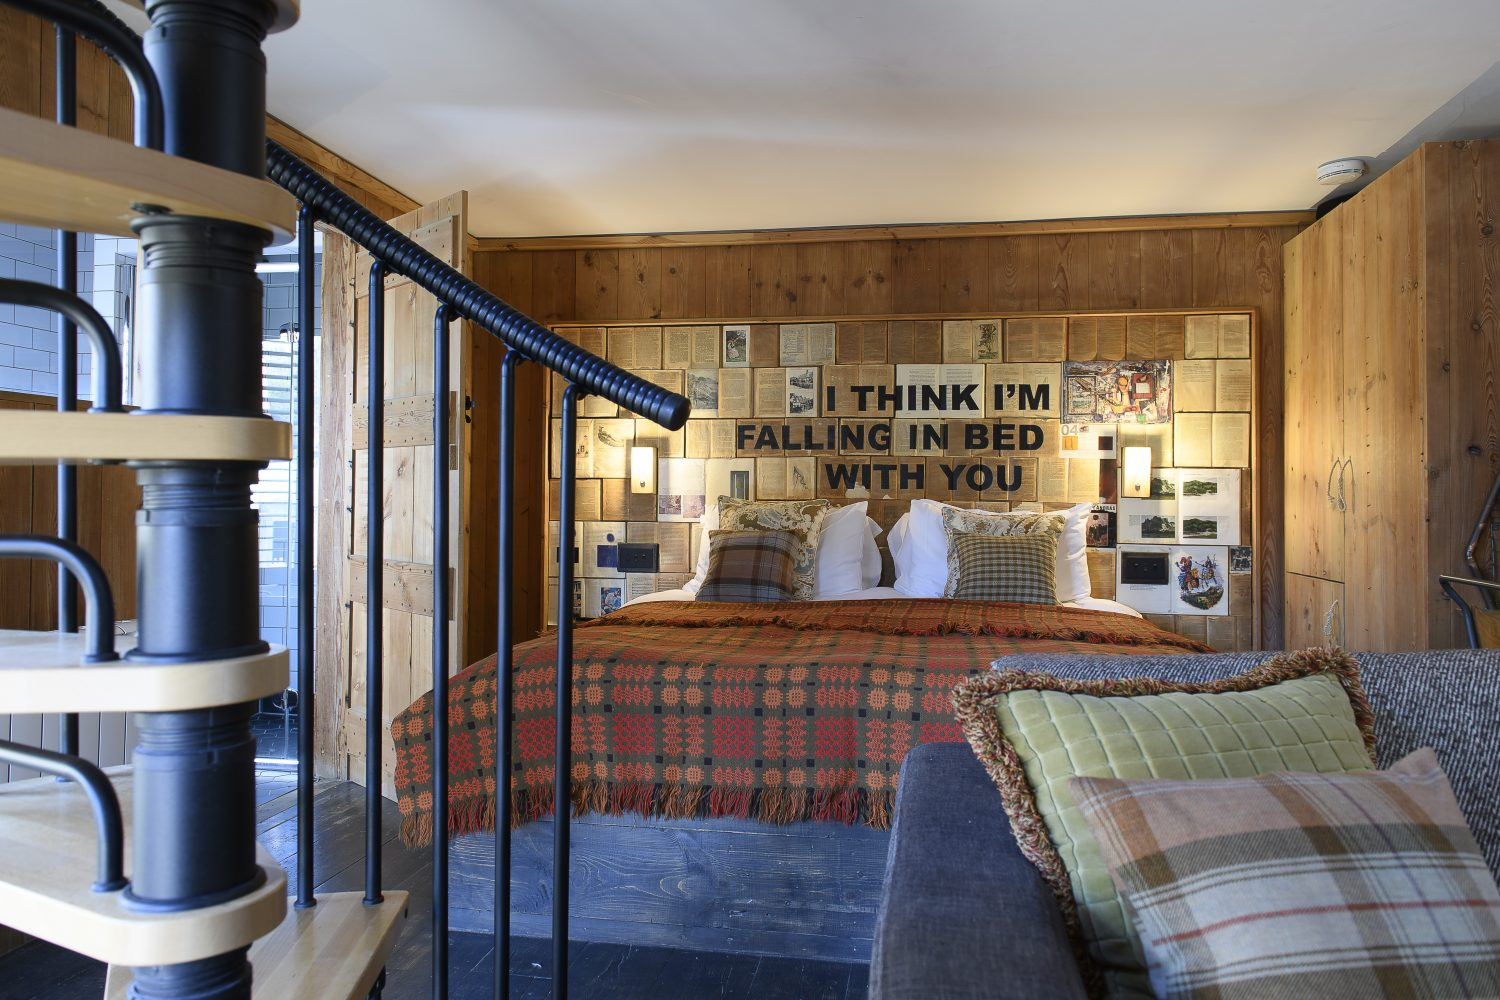 Between The Lines is one of The Bell's lodges, complete with a mezzanine floor that's perfect for relaxing